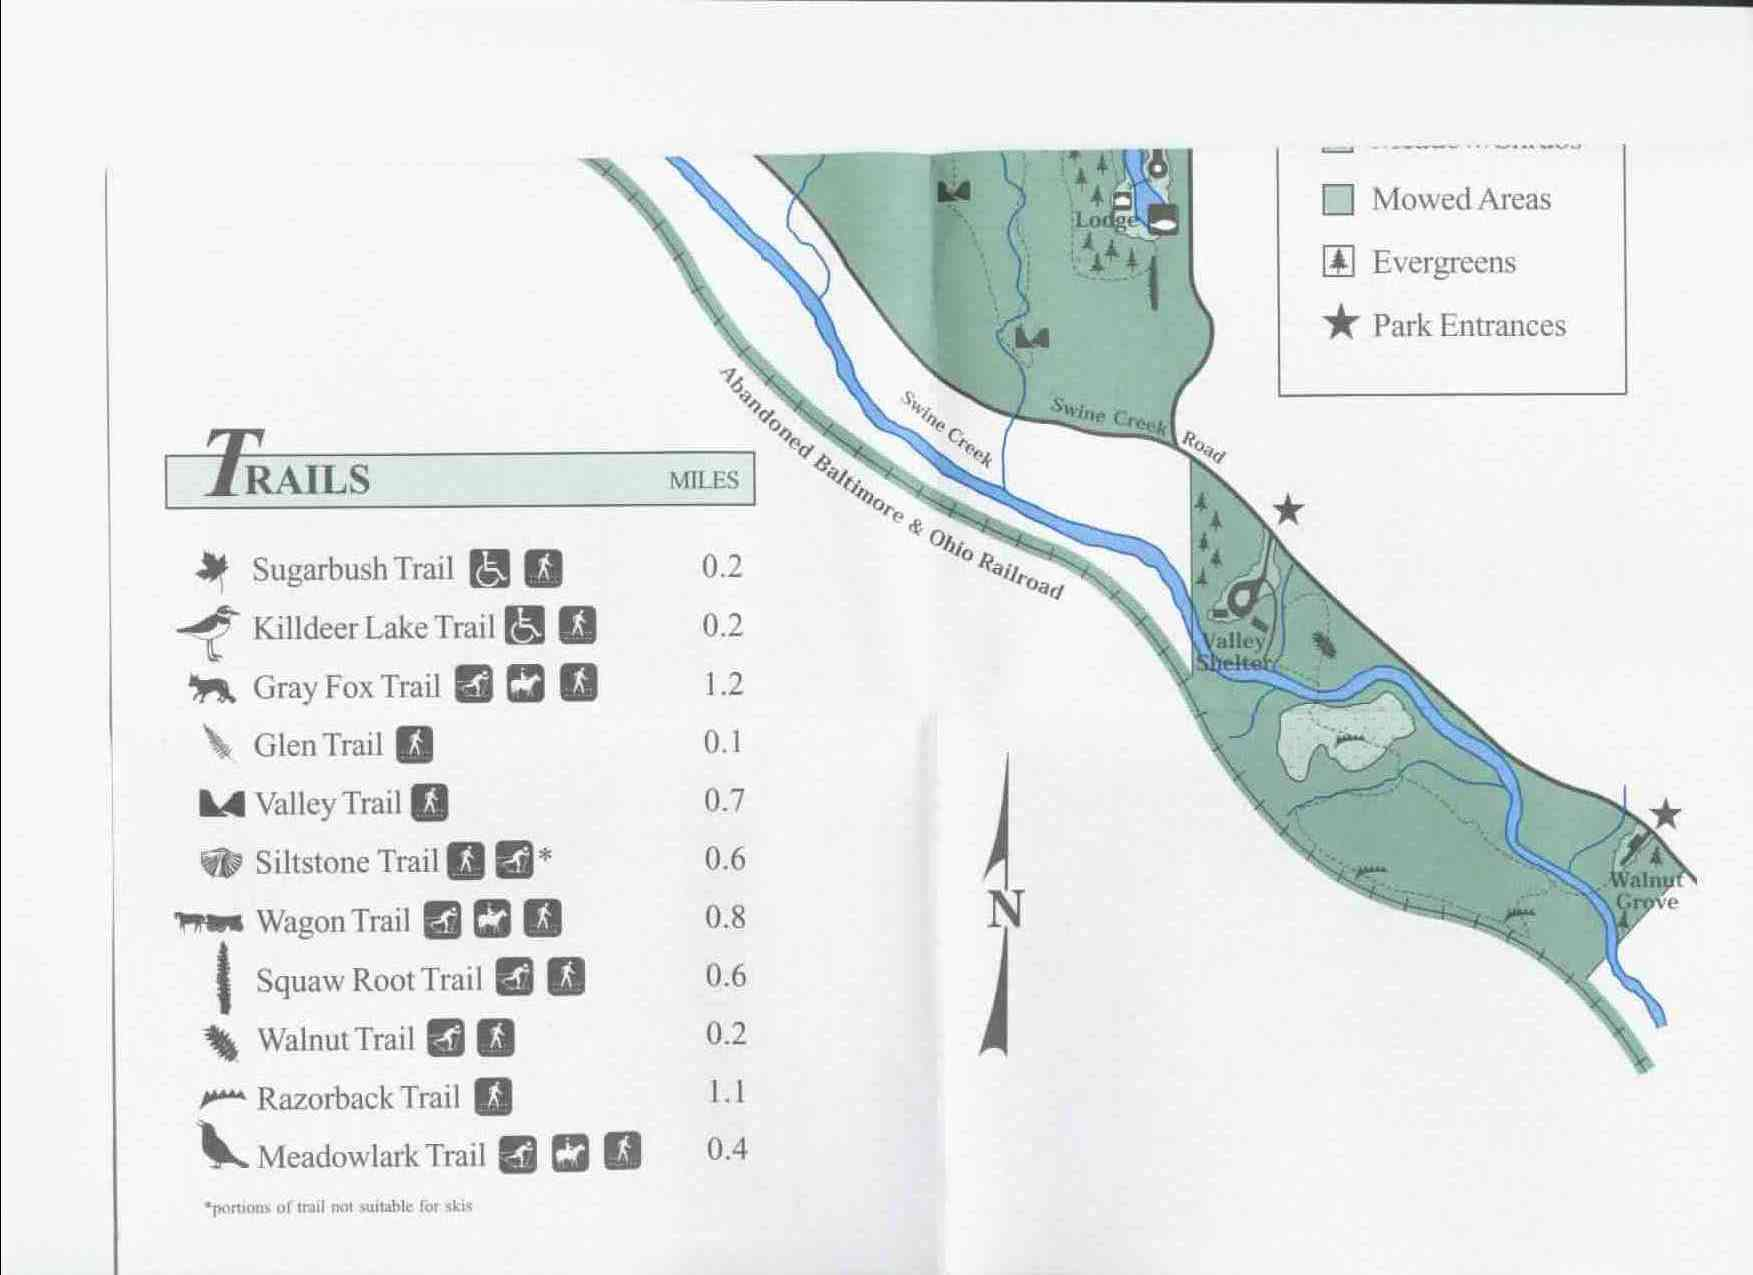 Swine Creek Reservation Trail Map Part 2